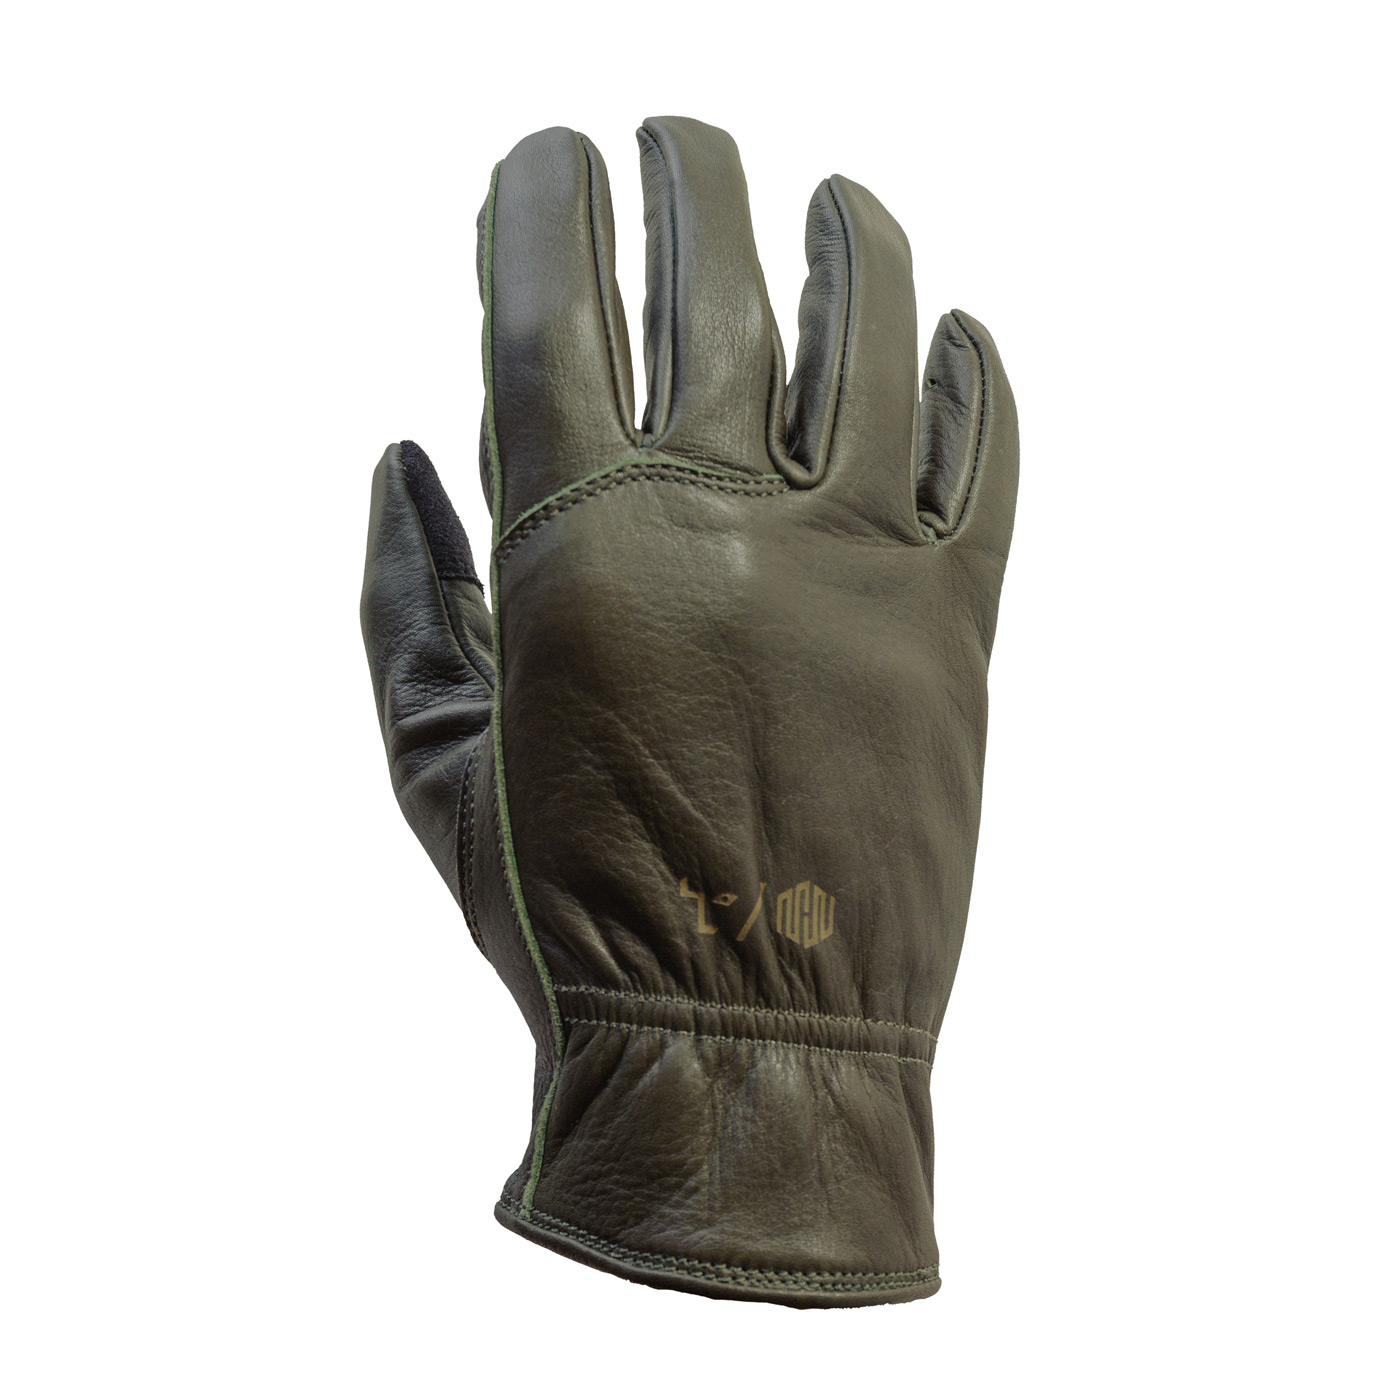 Del Mar Gloves Olive Full